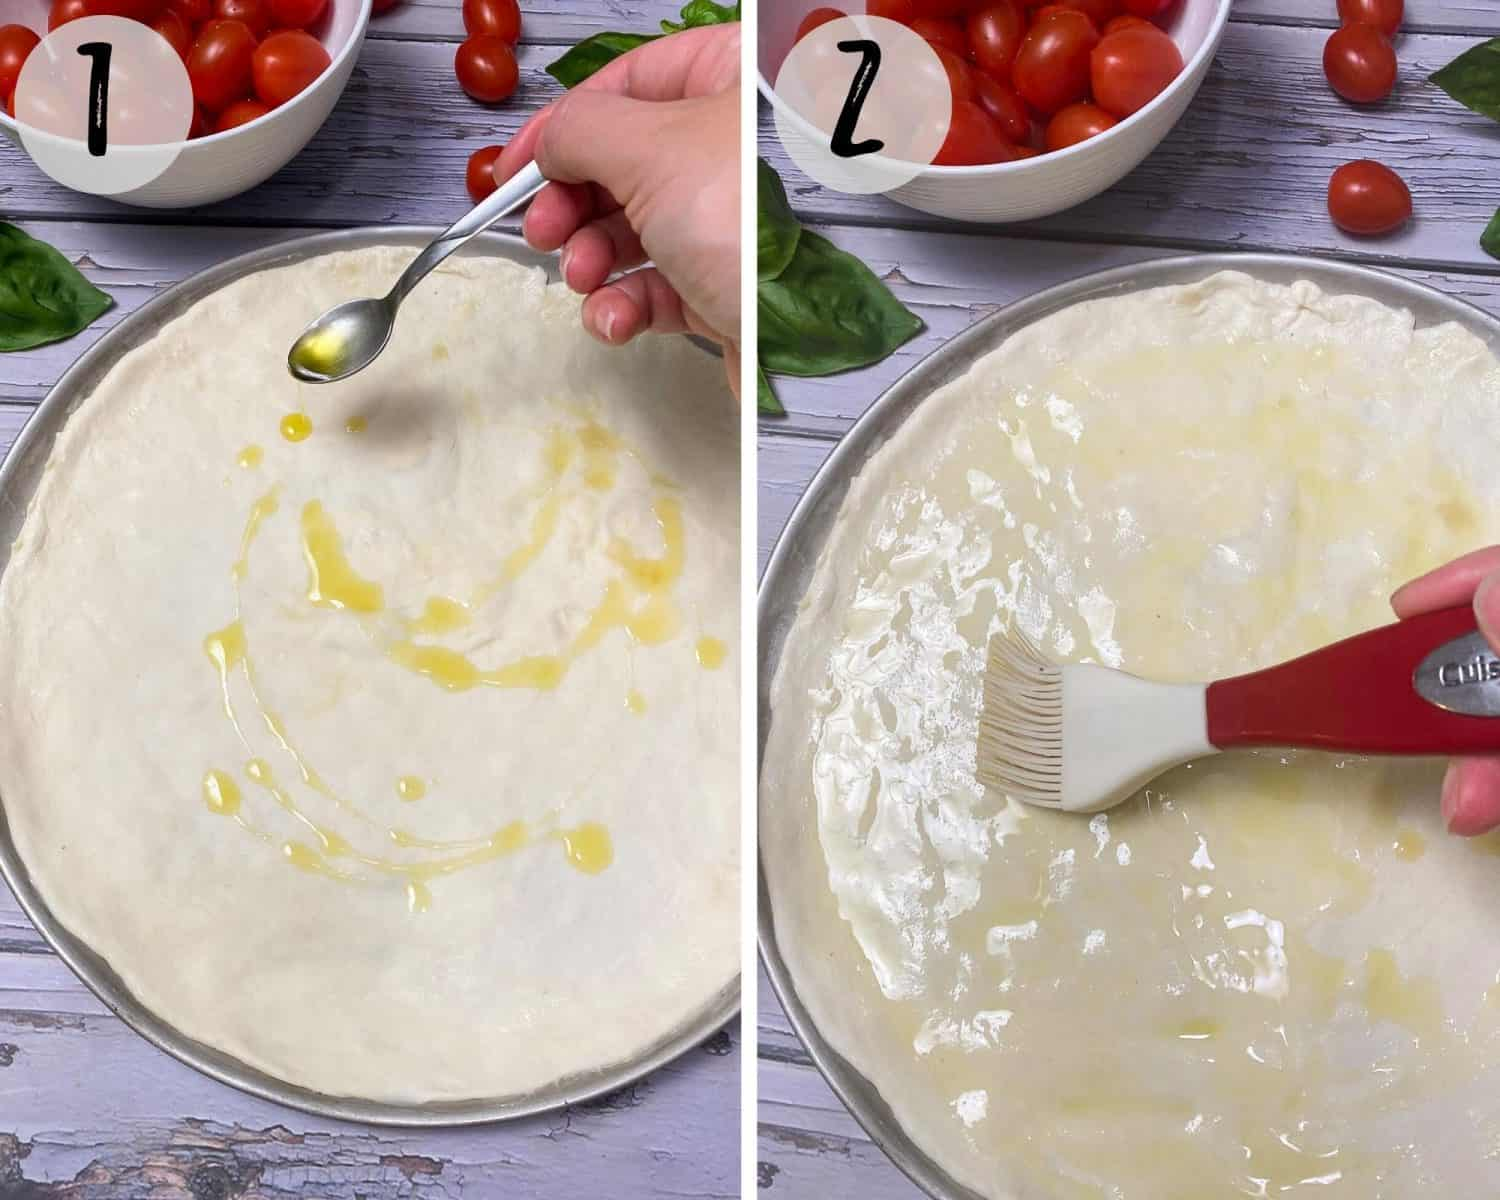 drizzling olive oil onto raw pizza dough and spreading it with silicone spatula